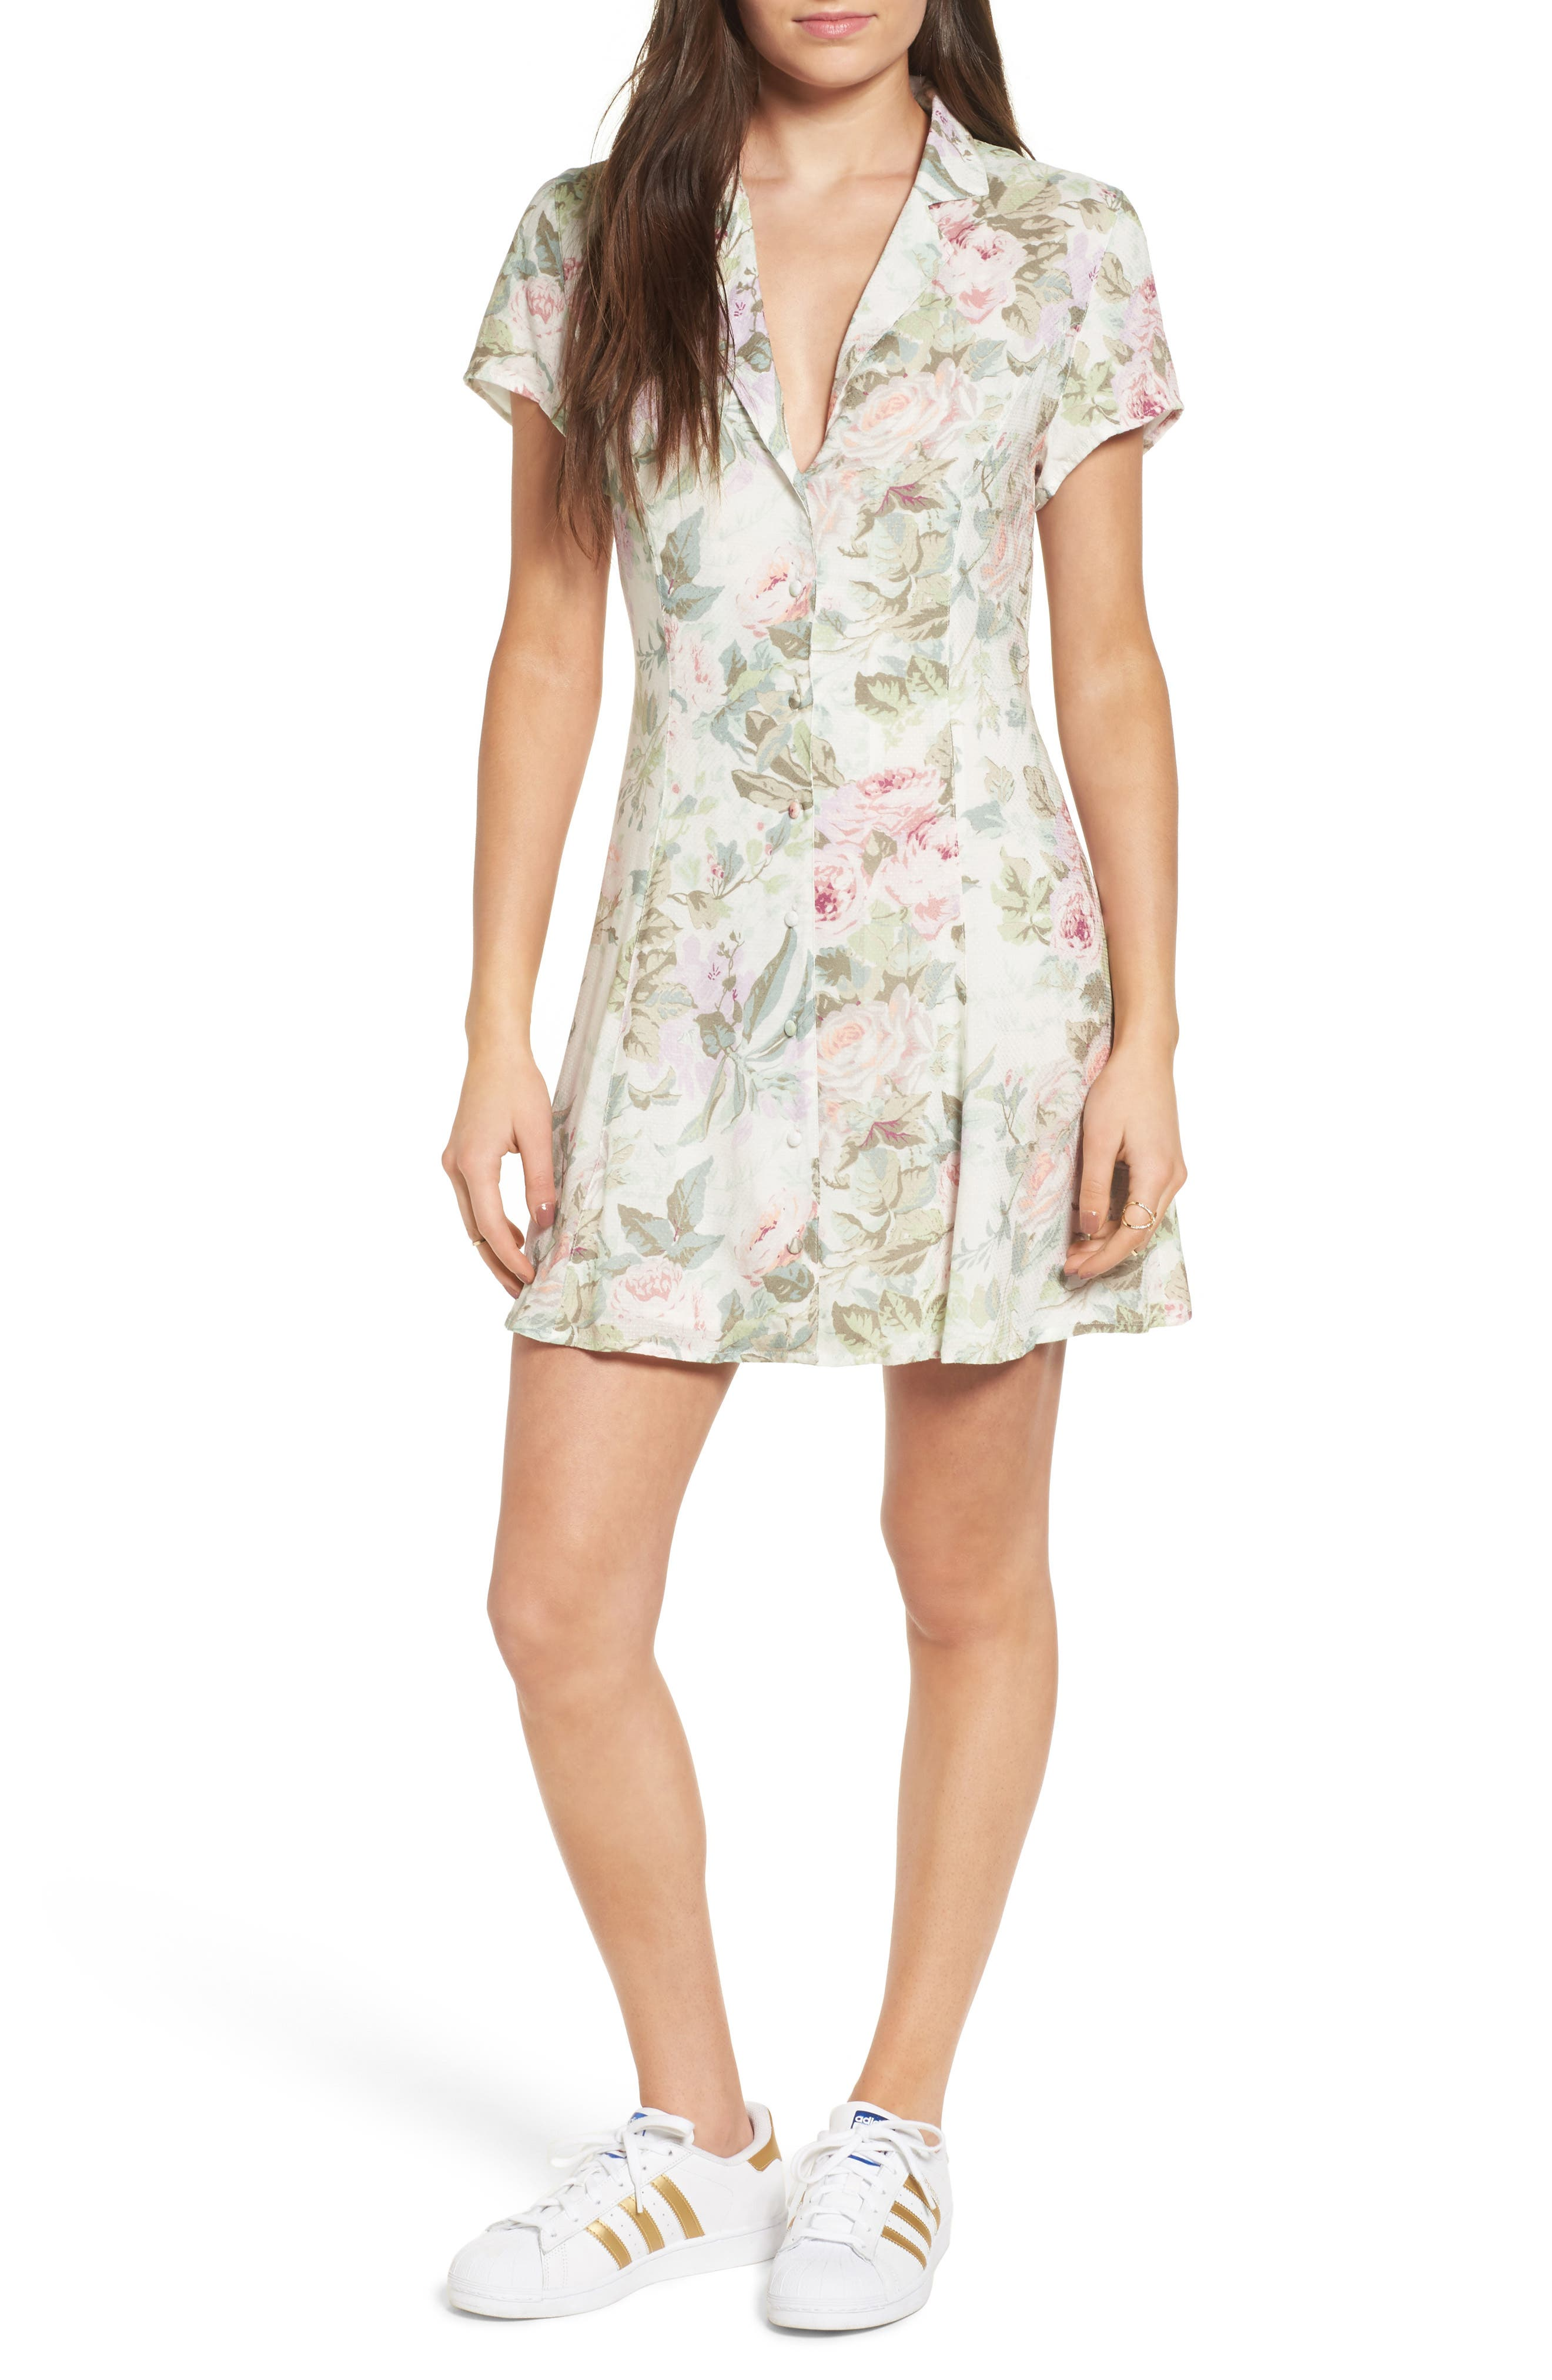 Majorelle Tumbleweed Skater Dress